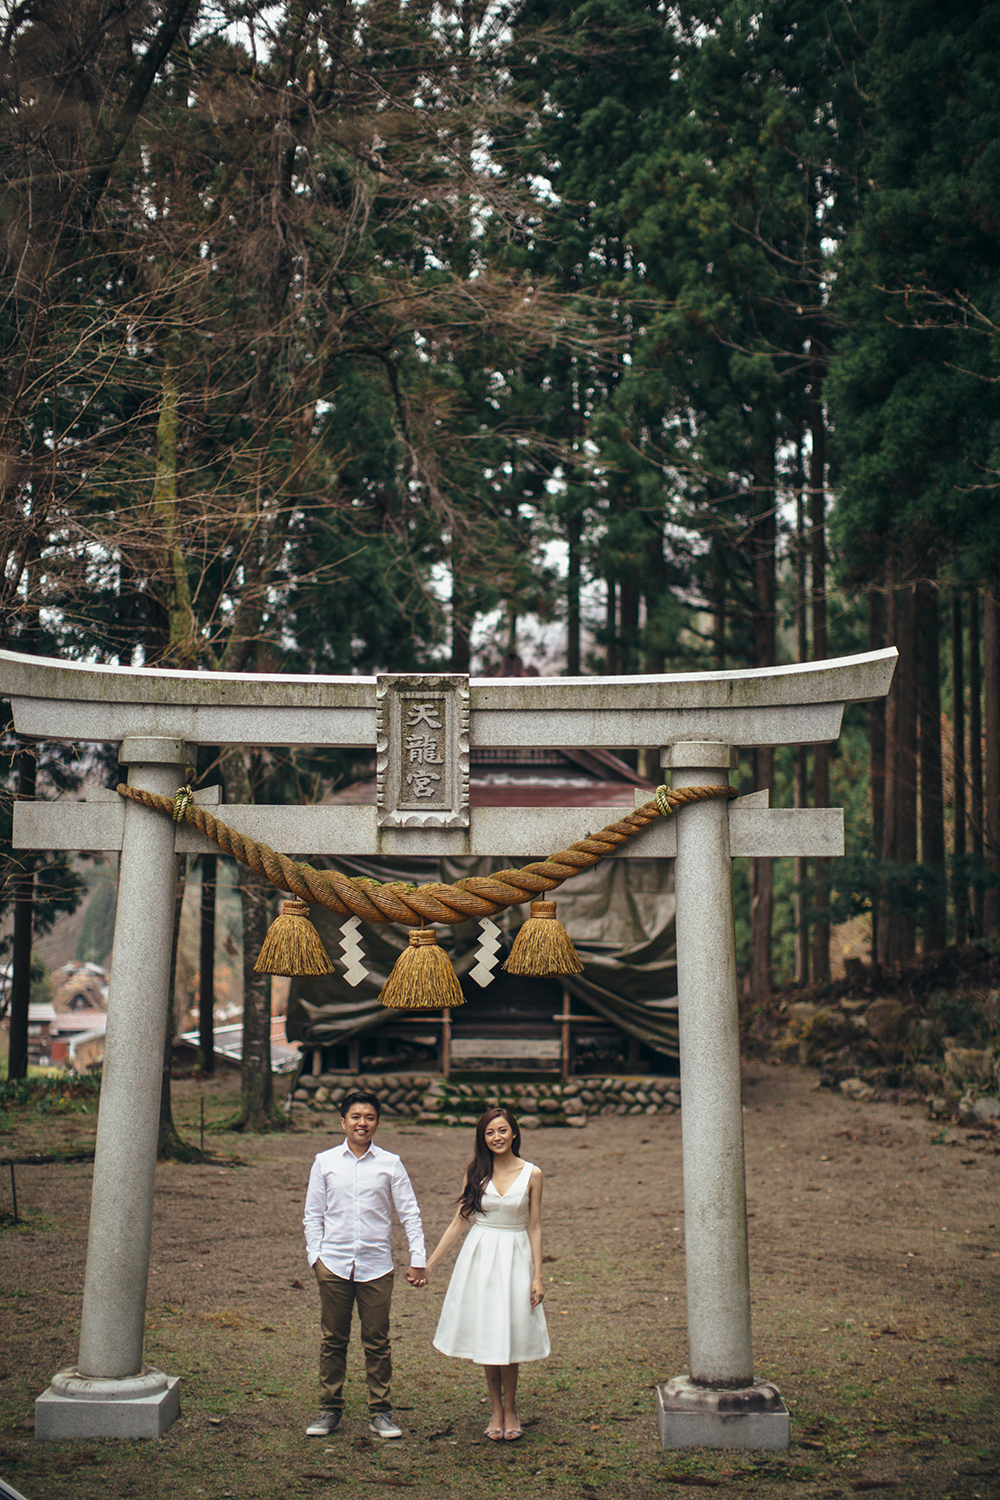 Photography by Quarter A. Shirakawa Japan. www.theweddingnotebook.com